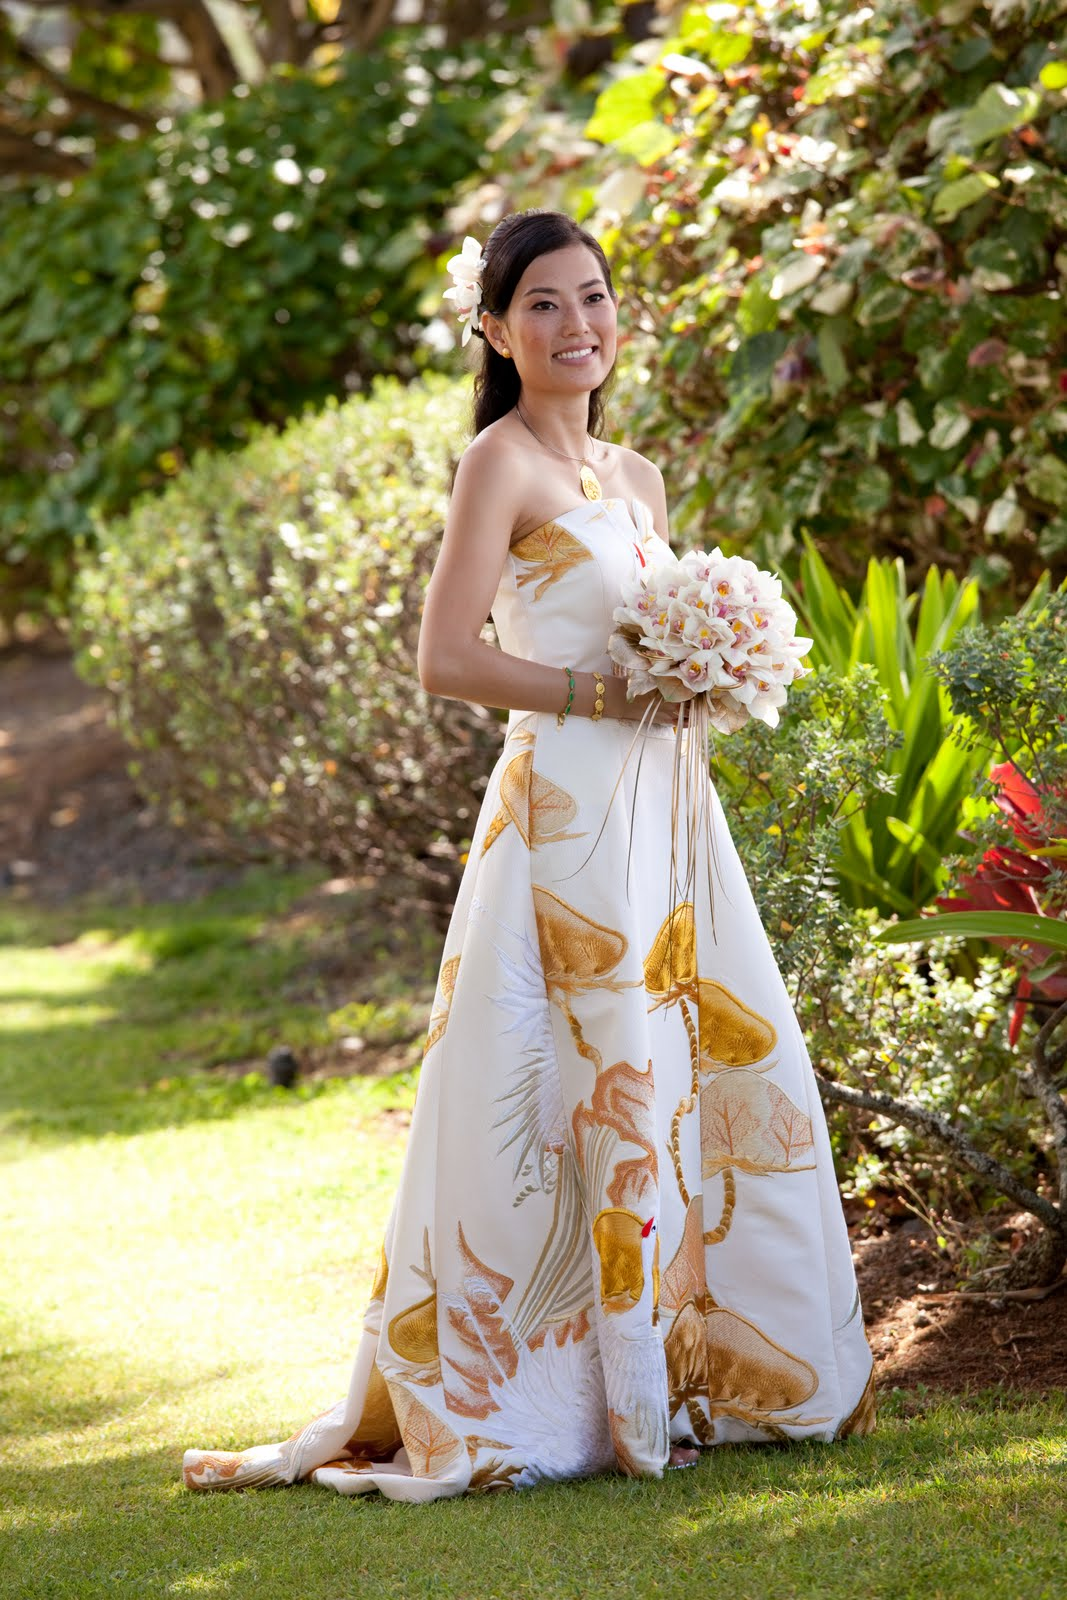 neu events\' Blog for The Knot\'s Hawaii site: One-of-a-Kind Wedding Gown